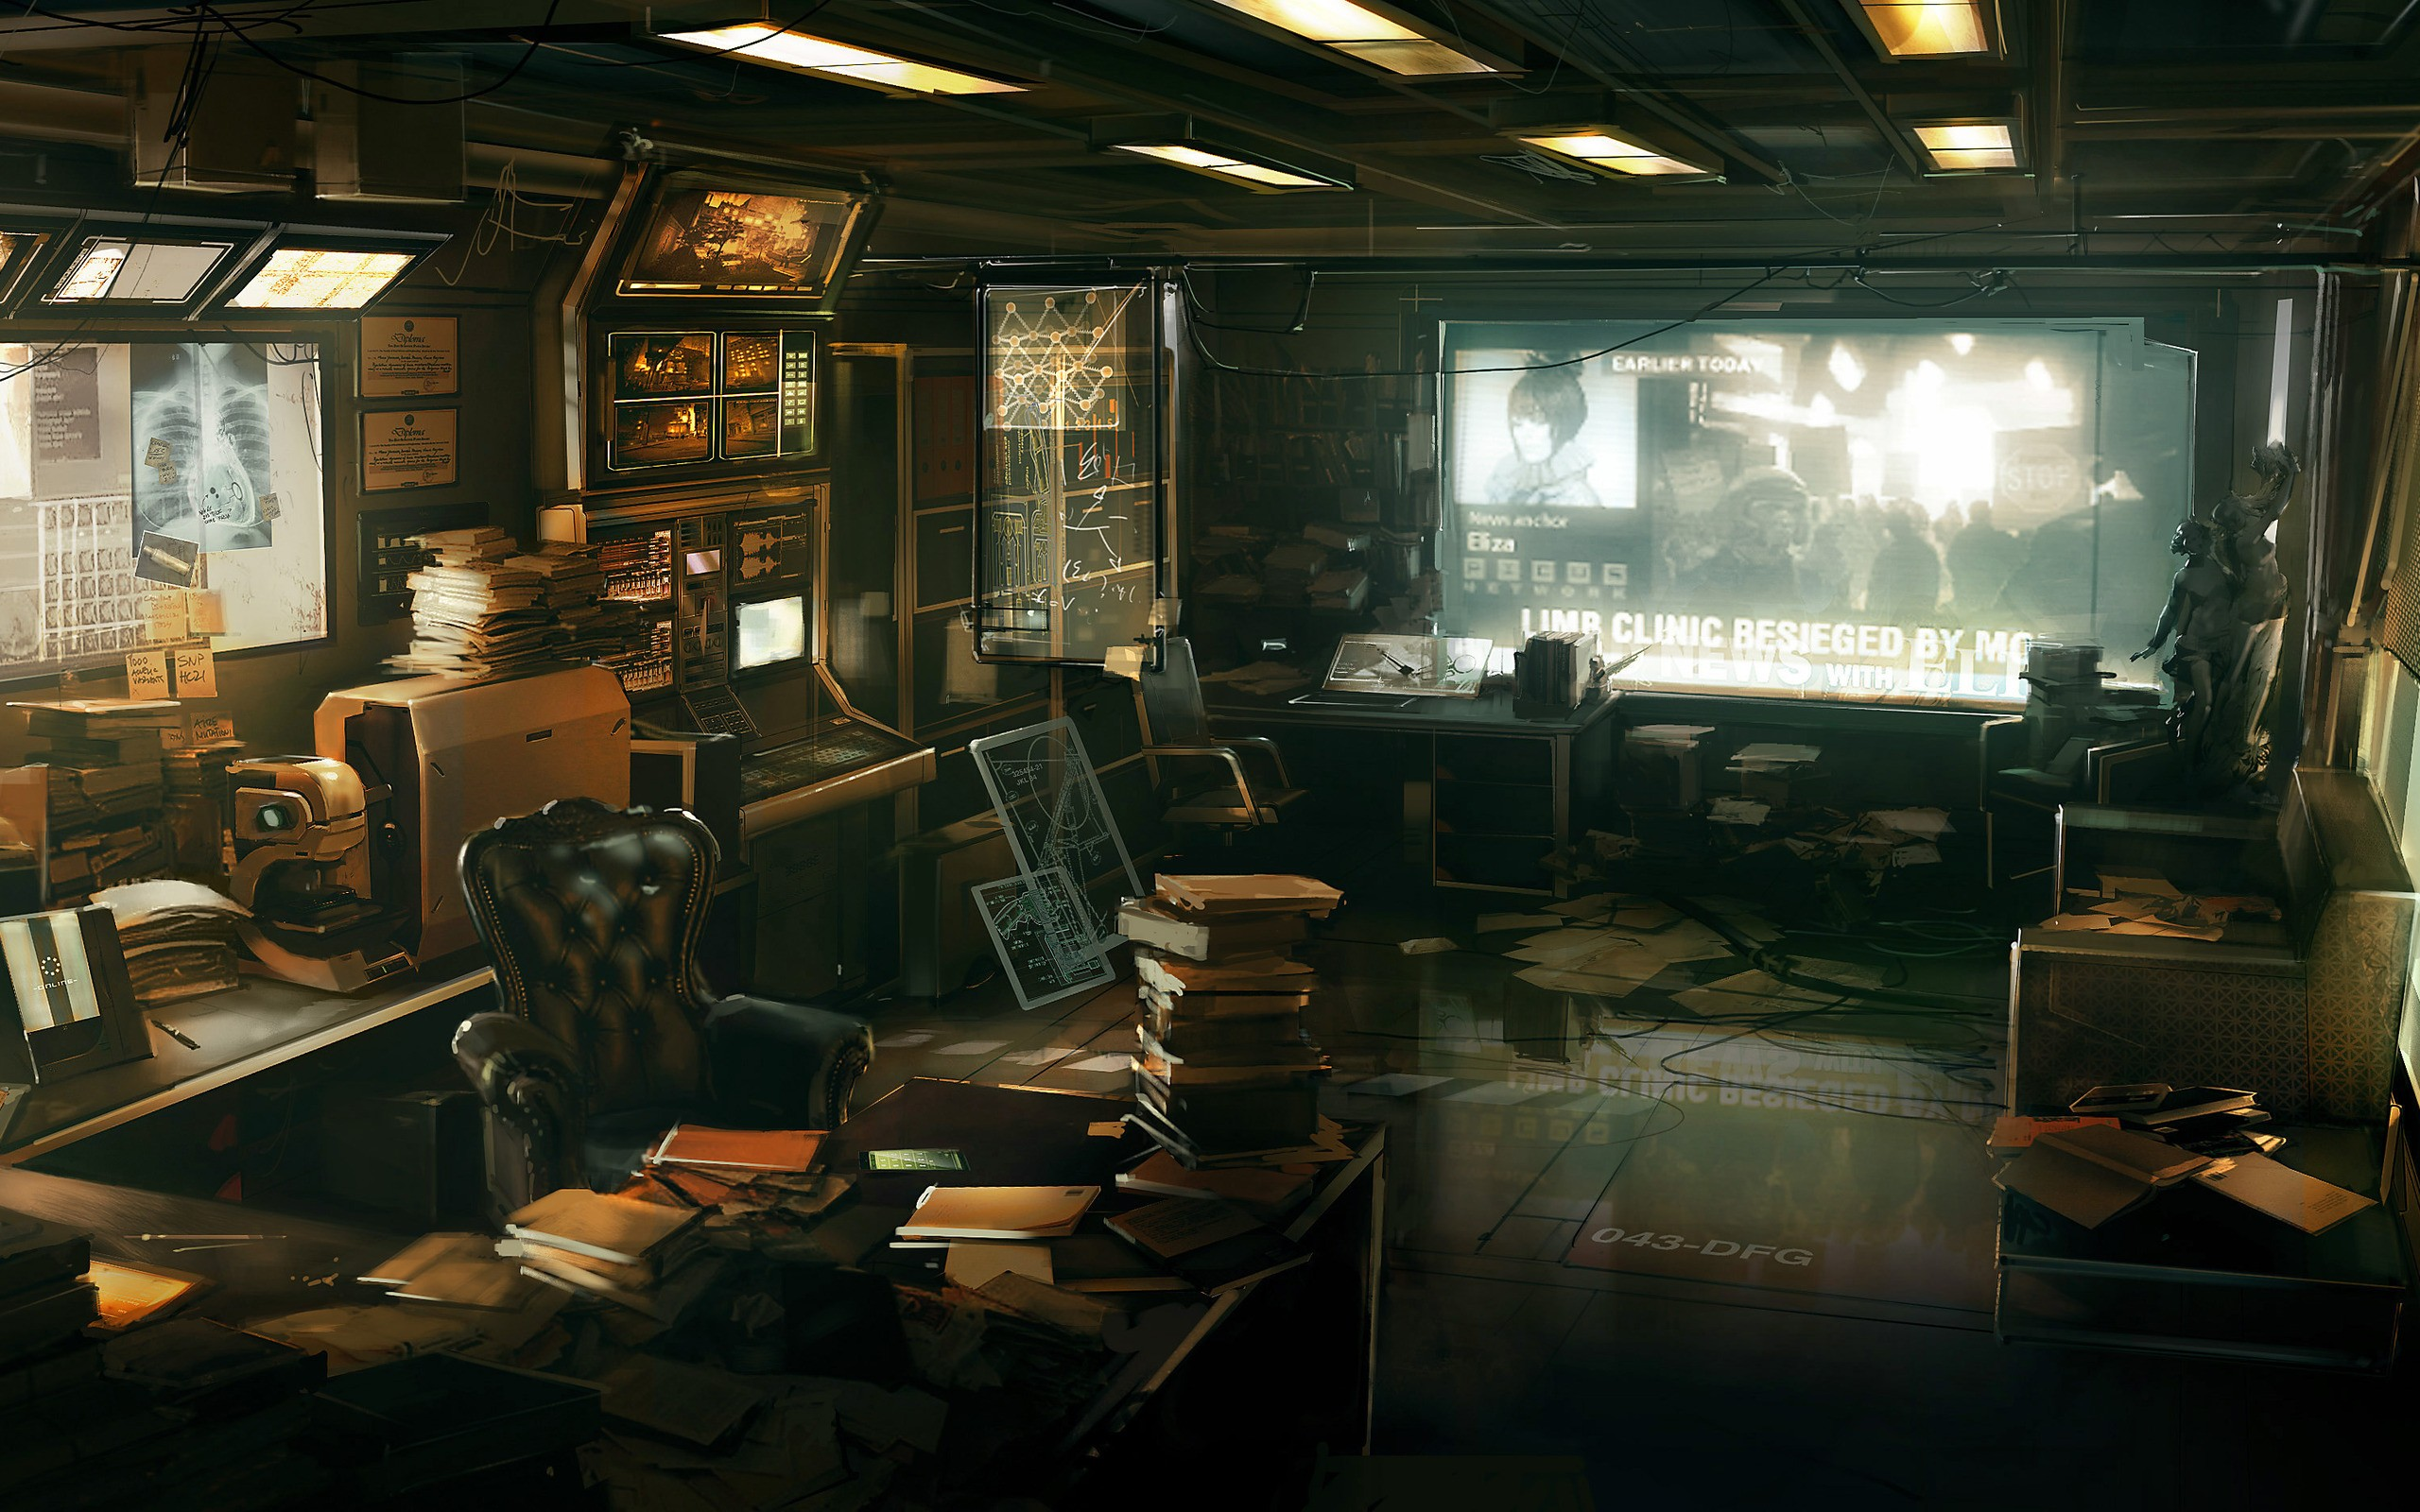 Evil Office Wallpapers Scary Resident Evil Office HD Wallpapers 2560x1600